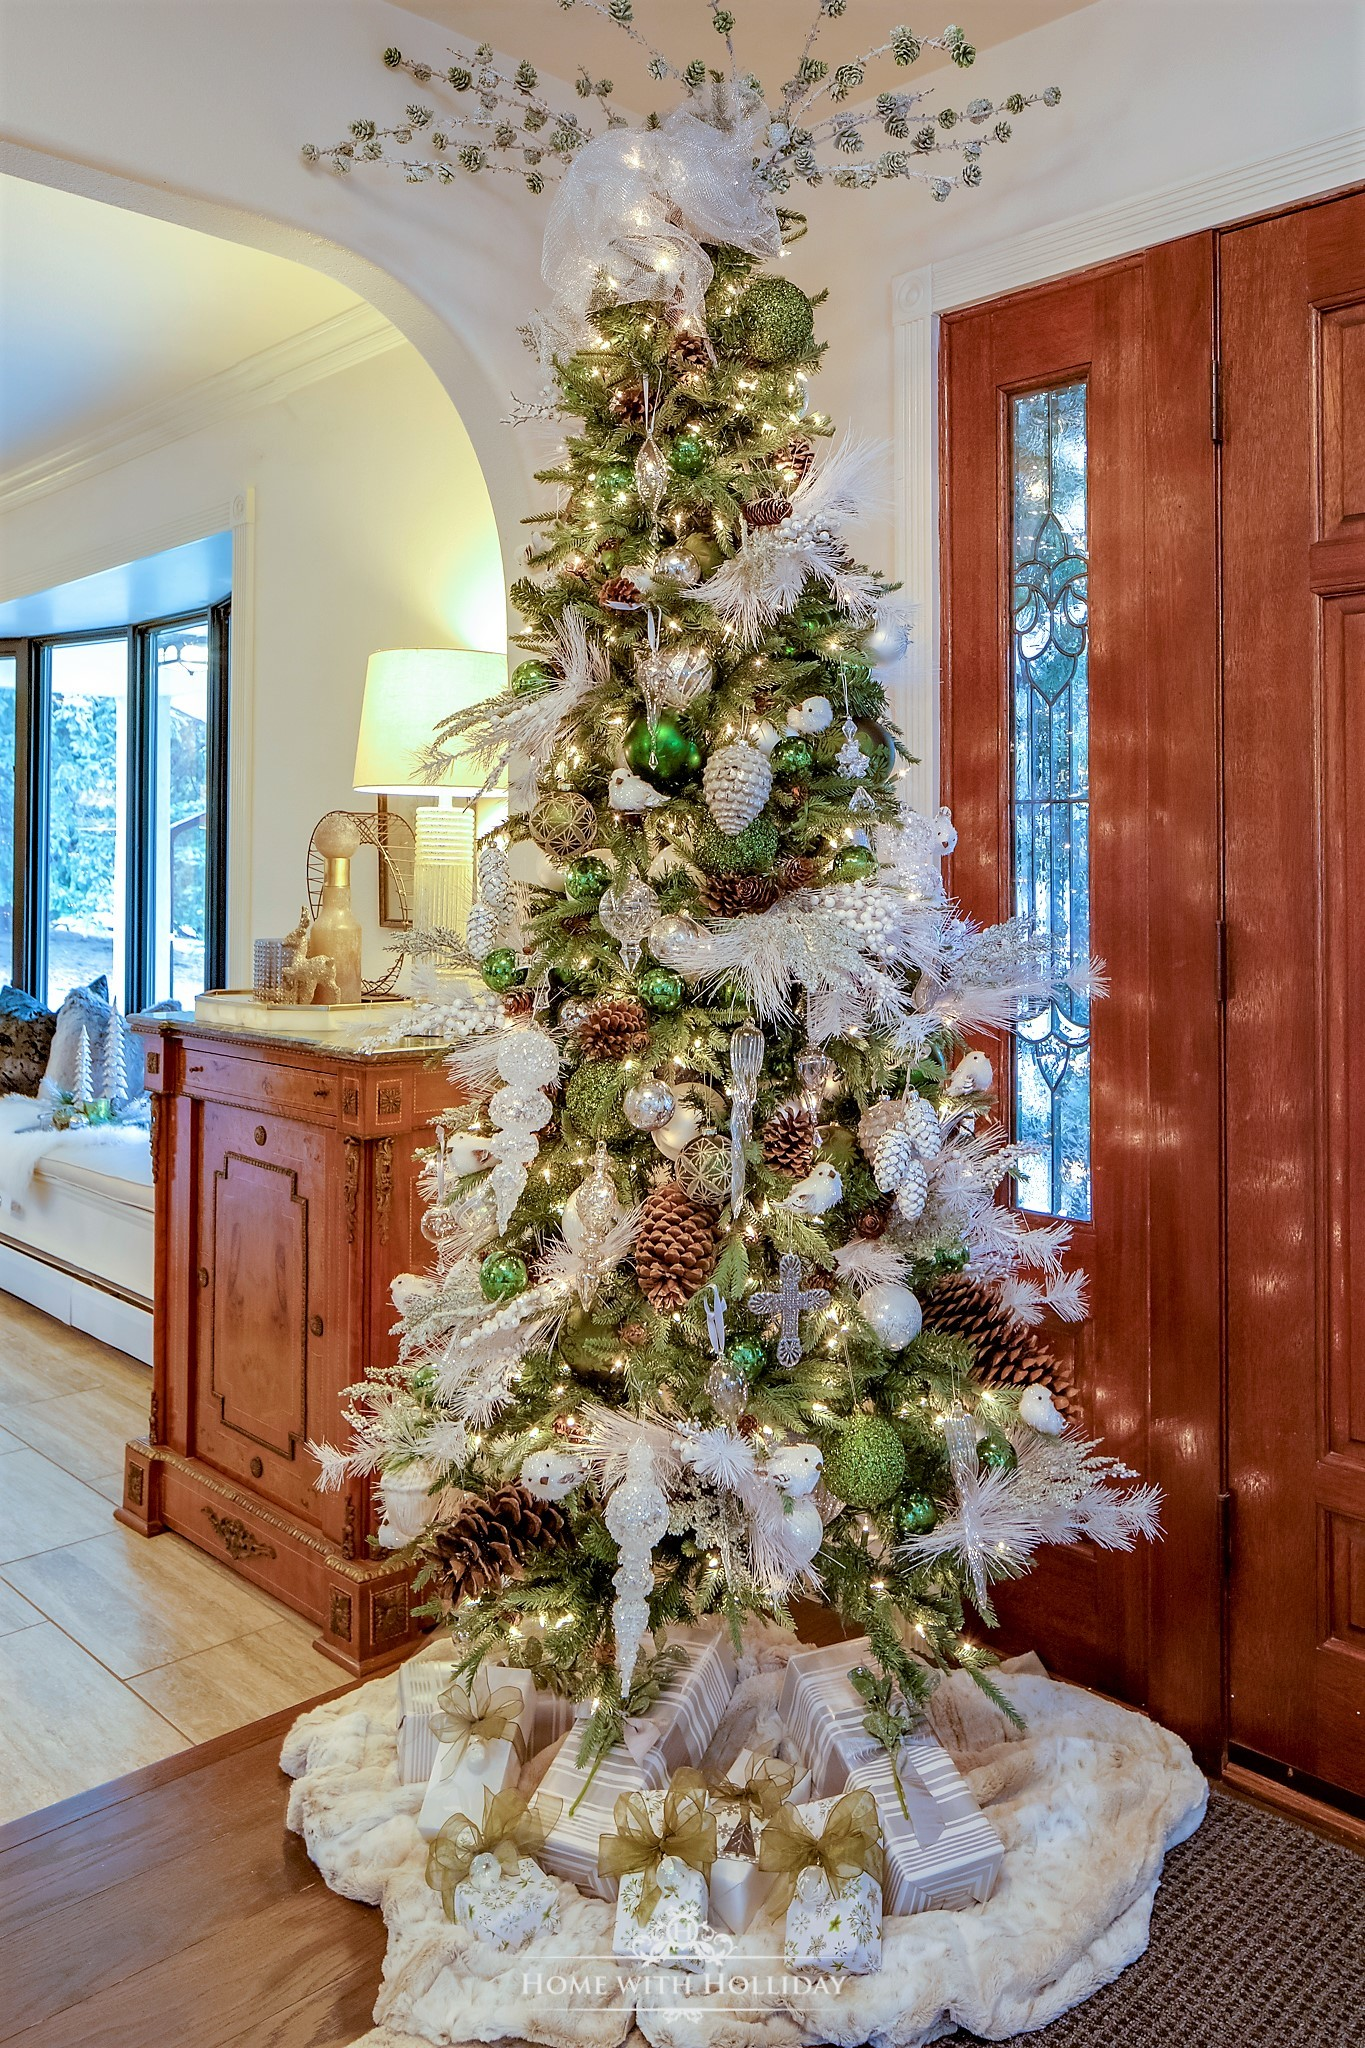 Green and White Winter Christmas Tree - Home with Holliday